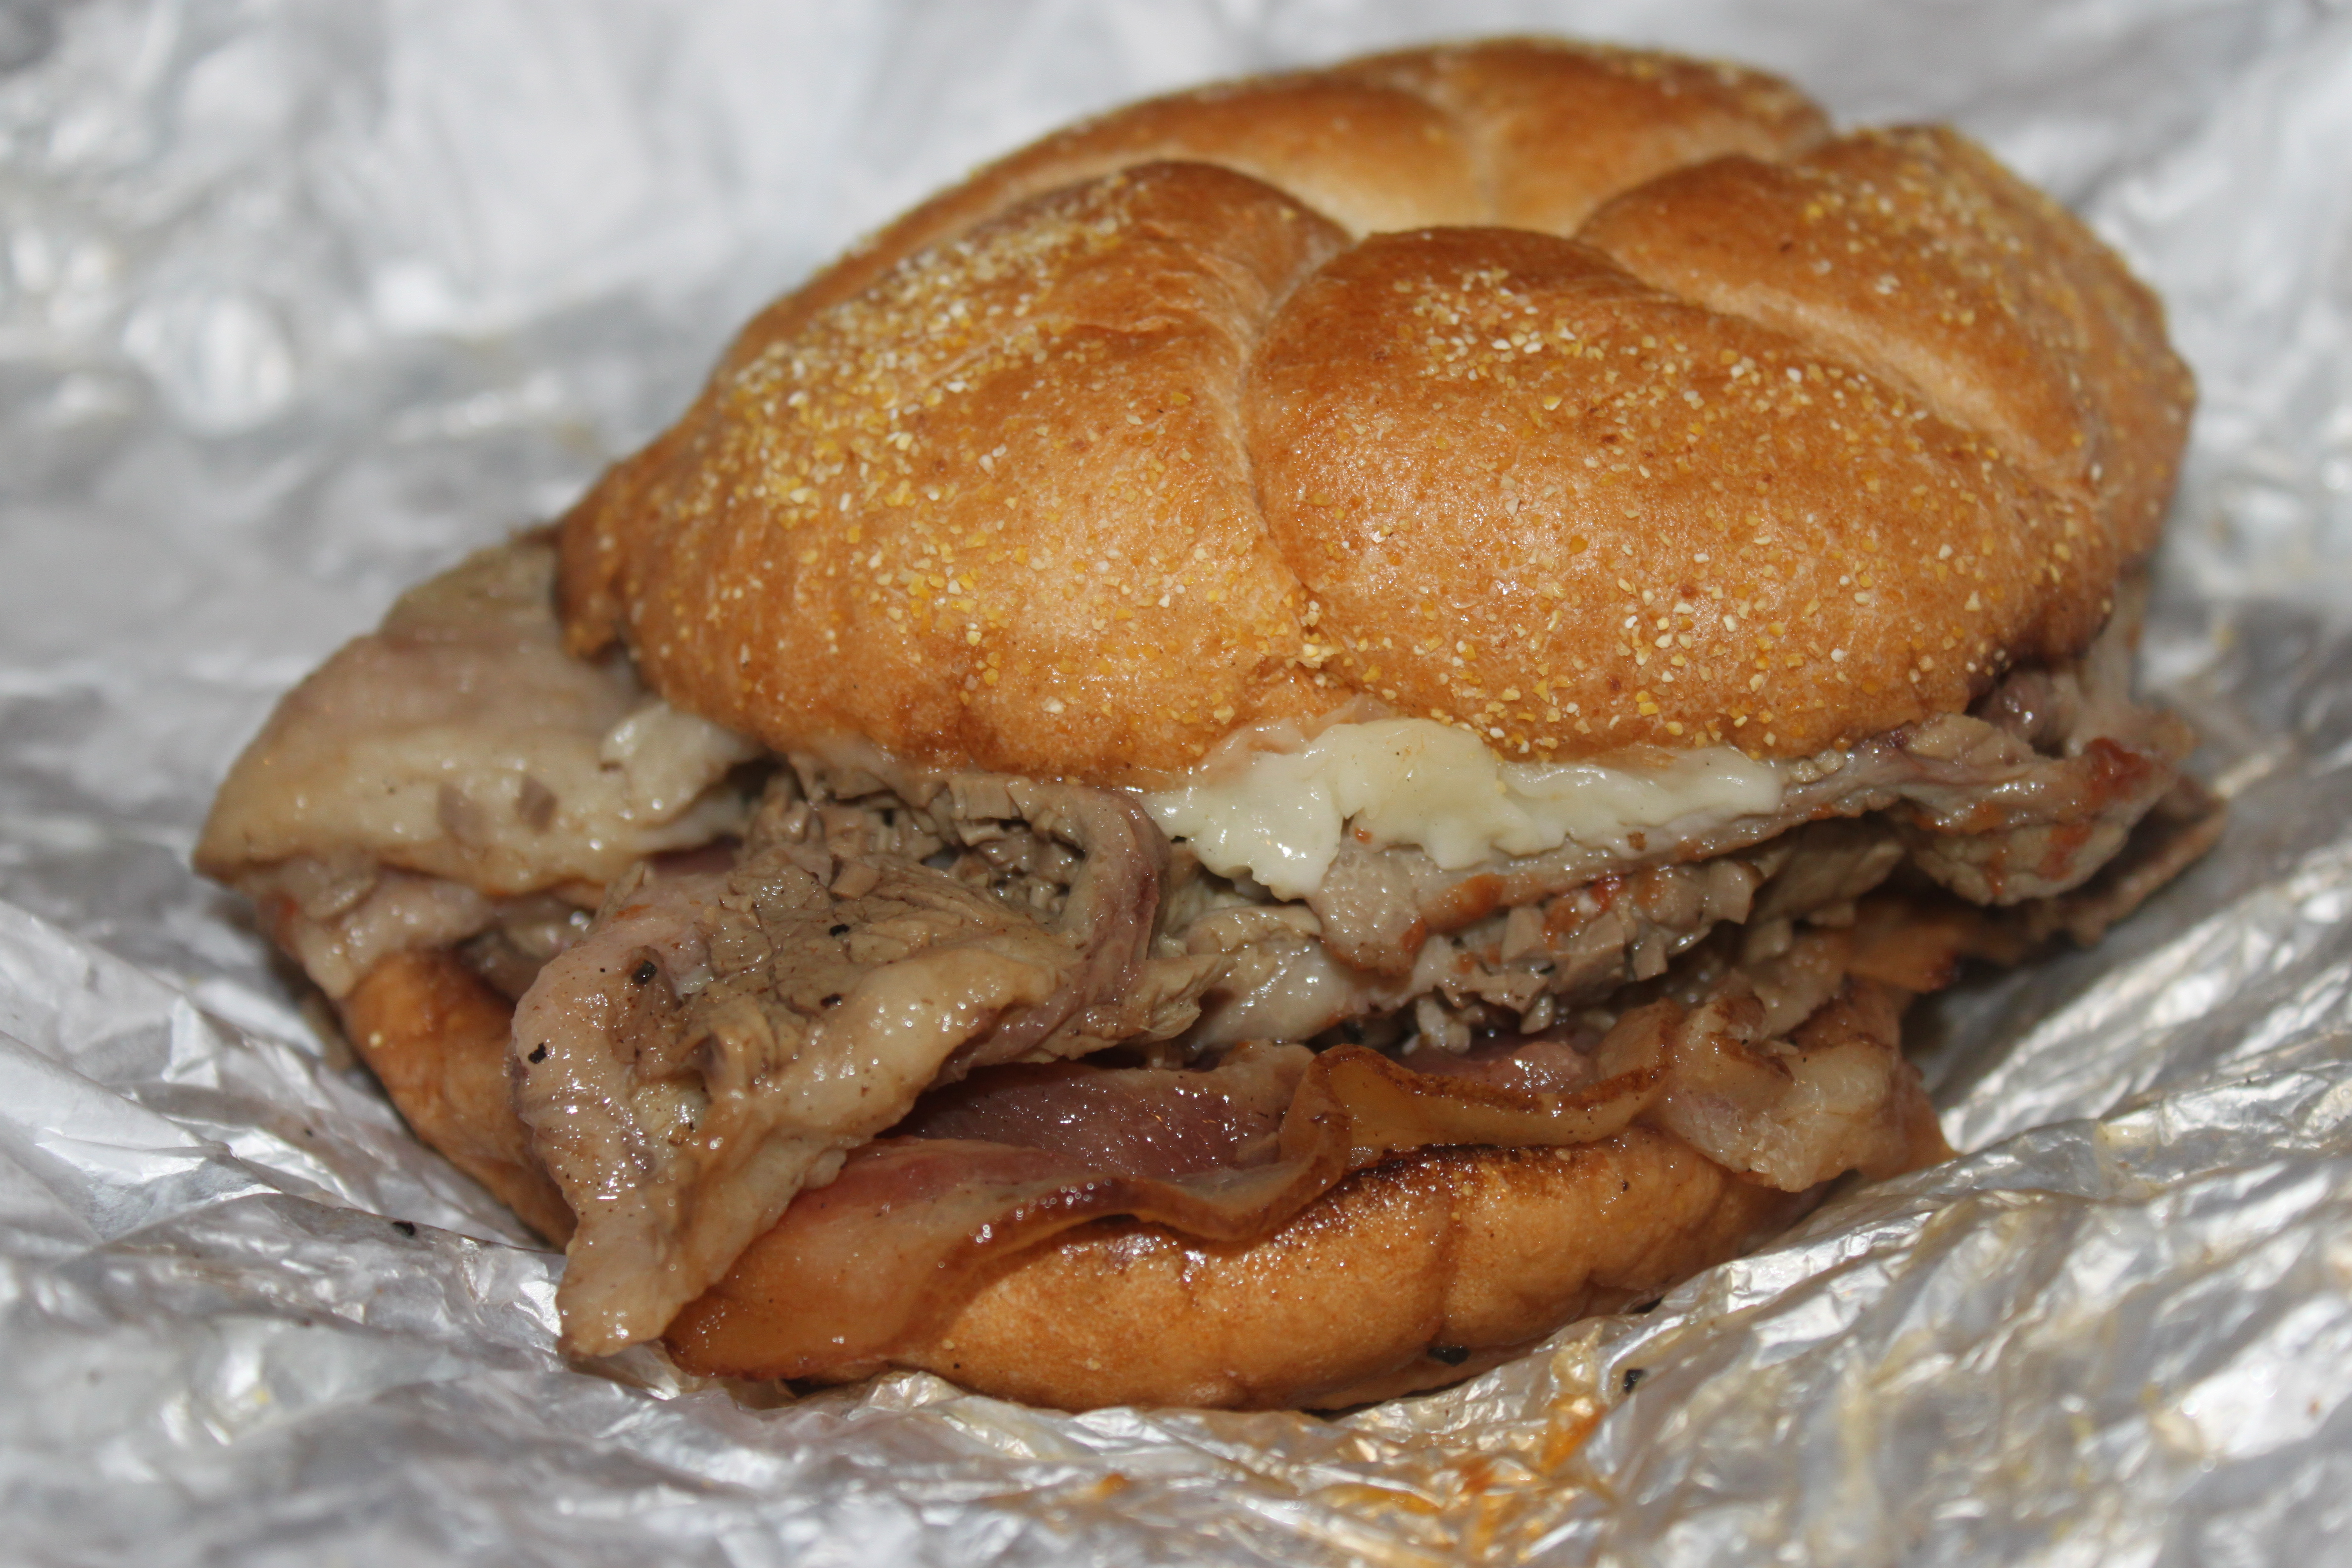 The Clogger: hot beef brisket, provolone, bacon, gravy, and mayonnaise ...